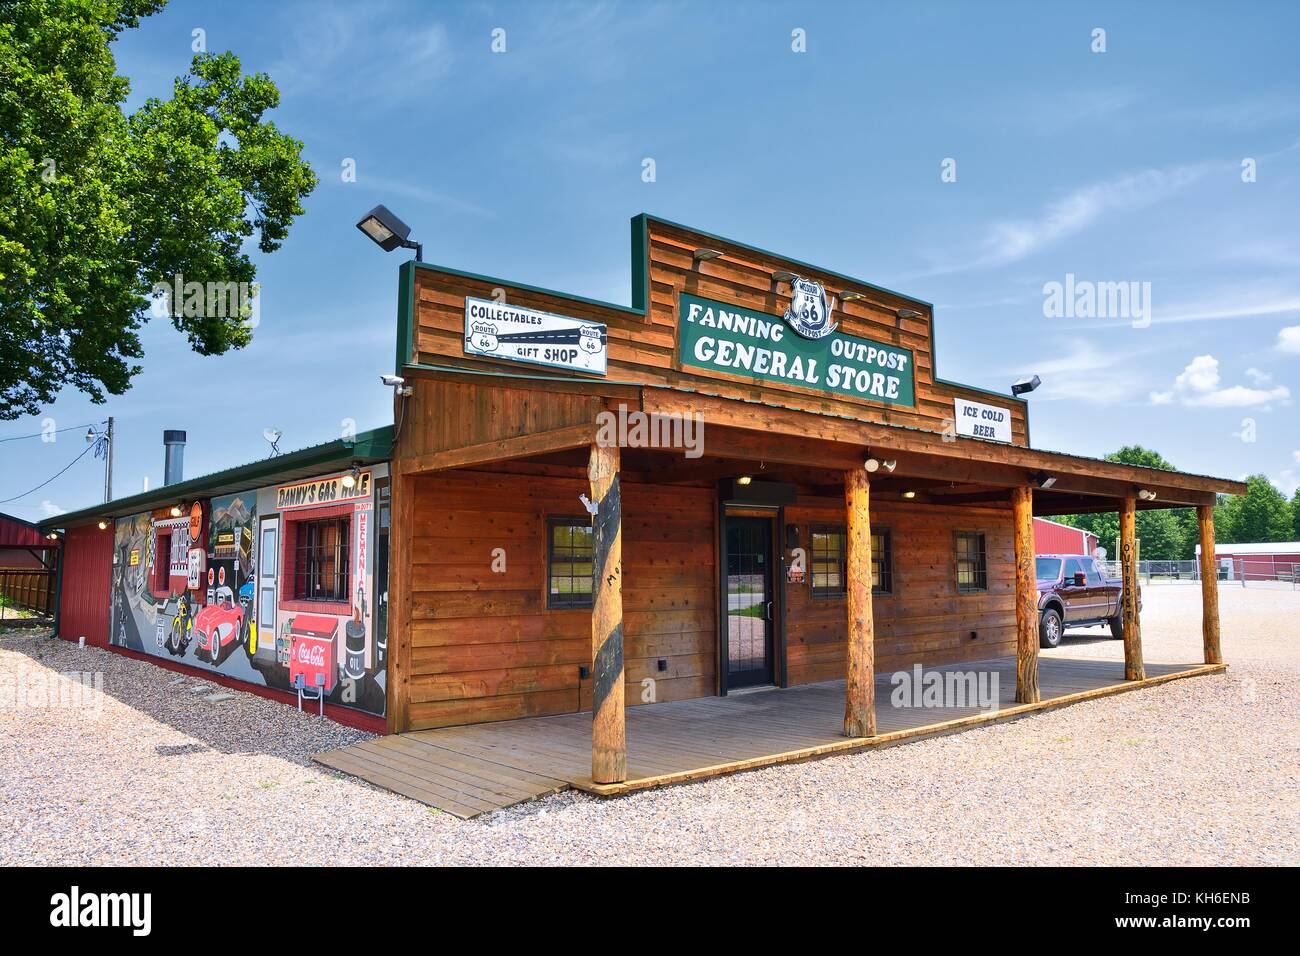 Fanning, Missouri - July 18 2017: Fanning outpost general store on the Route 66 in Missouri, Usa. - Stock Image